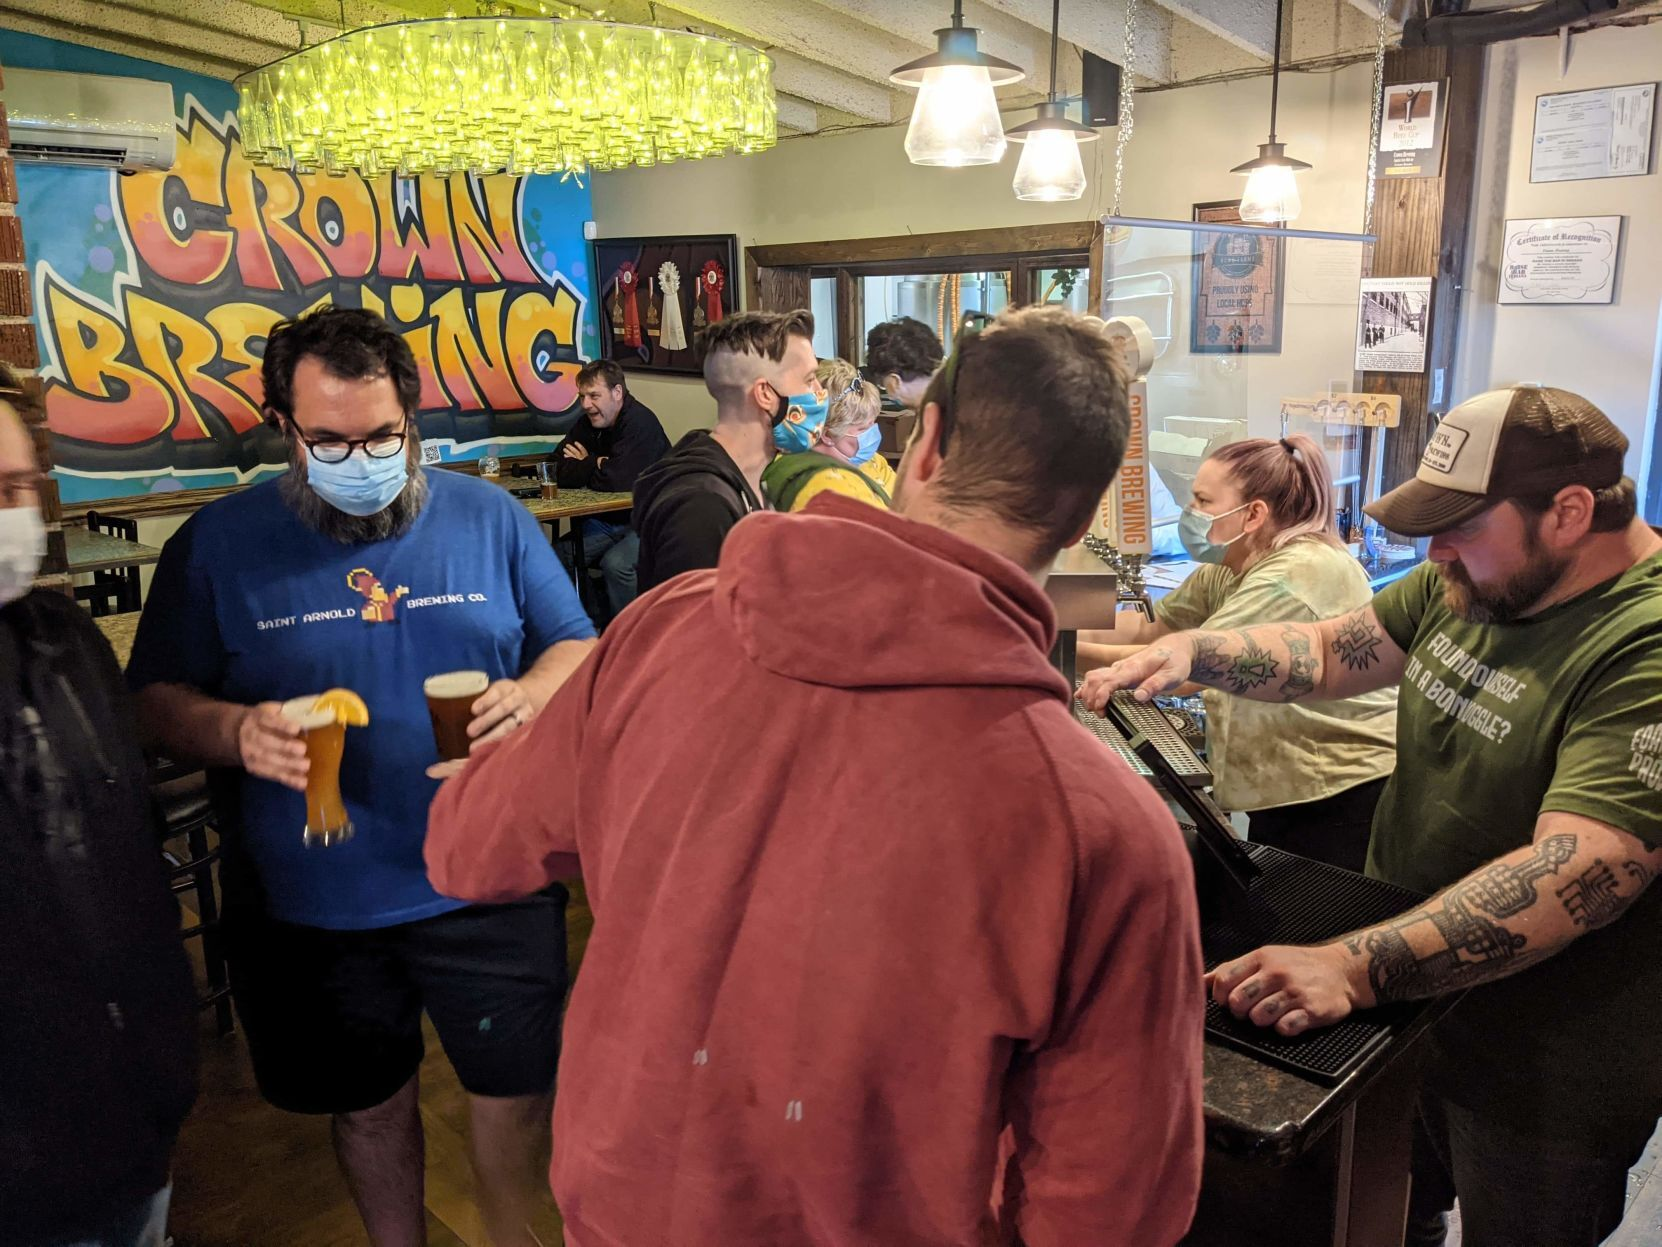 nwitimes.com - Joseph S. Pete - Crown Brewing's The Foamation Project experiments with innovative beers